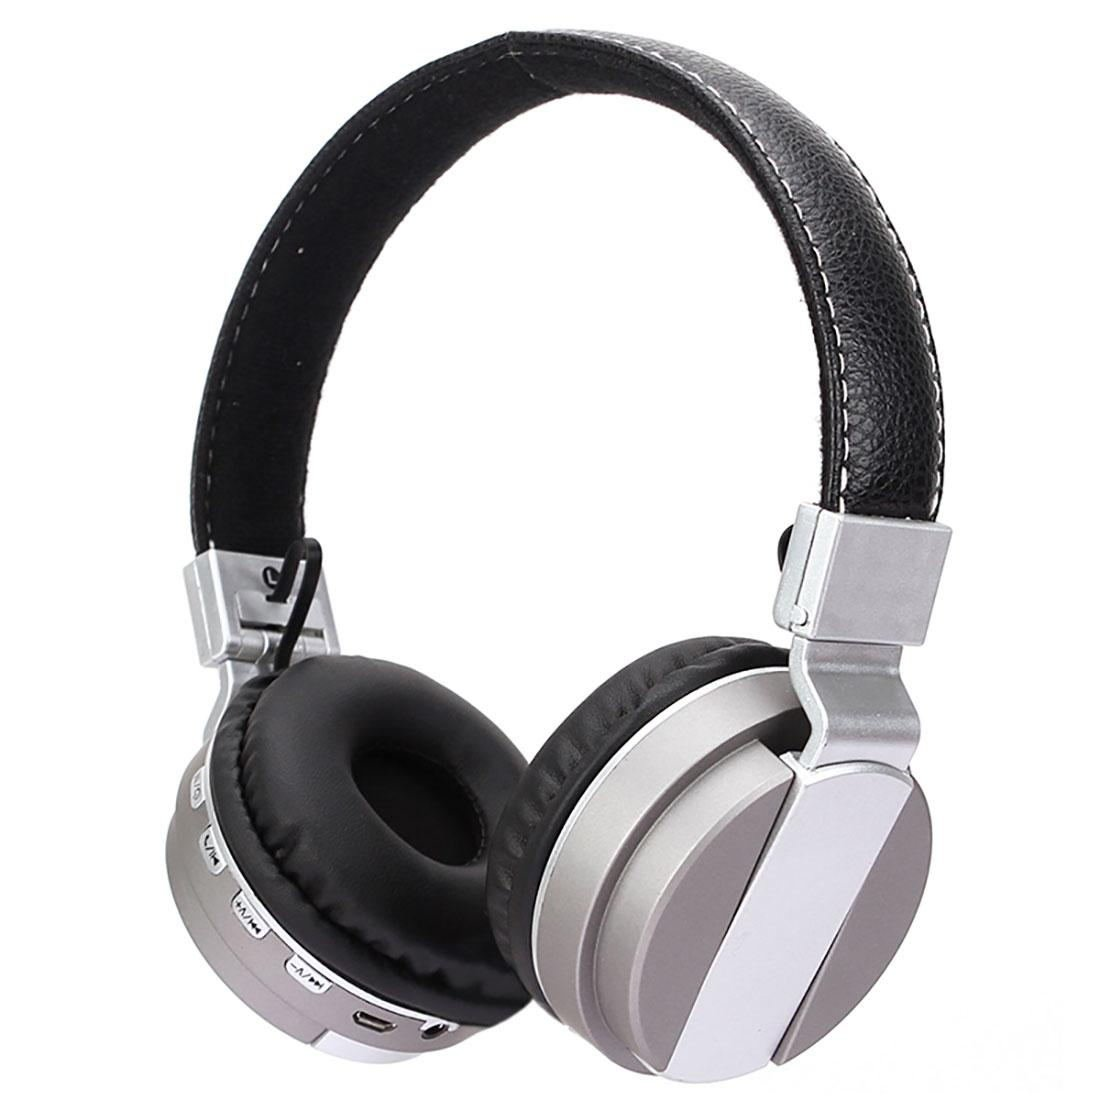 Headset Computer Headset High Quality Folding Stereo Bluetooth Headset B29 Silver